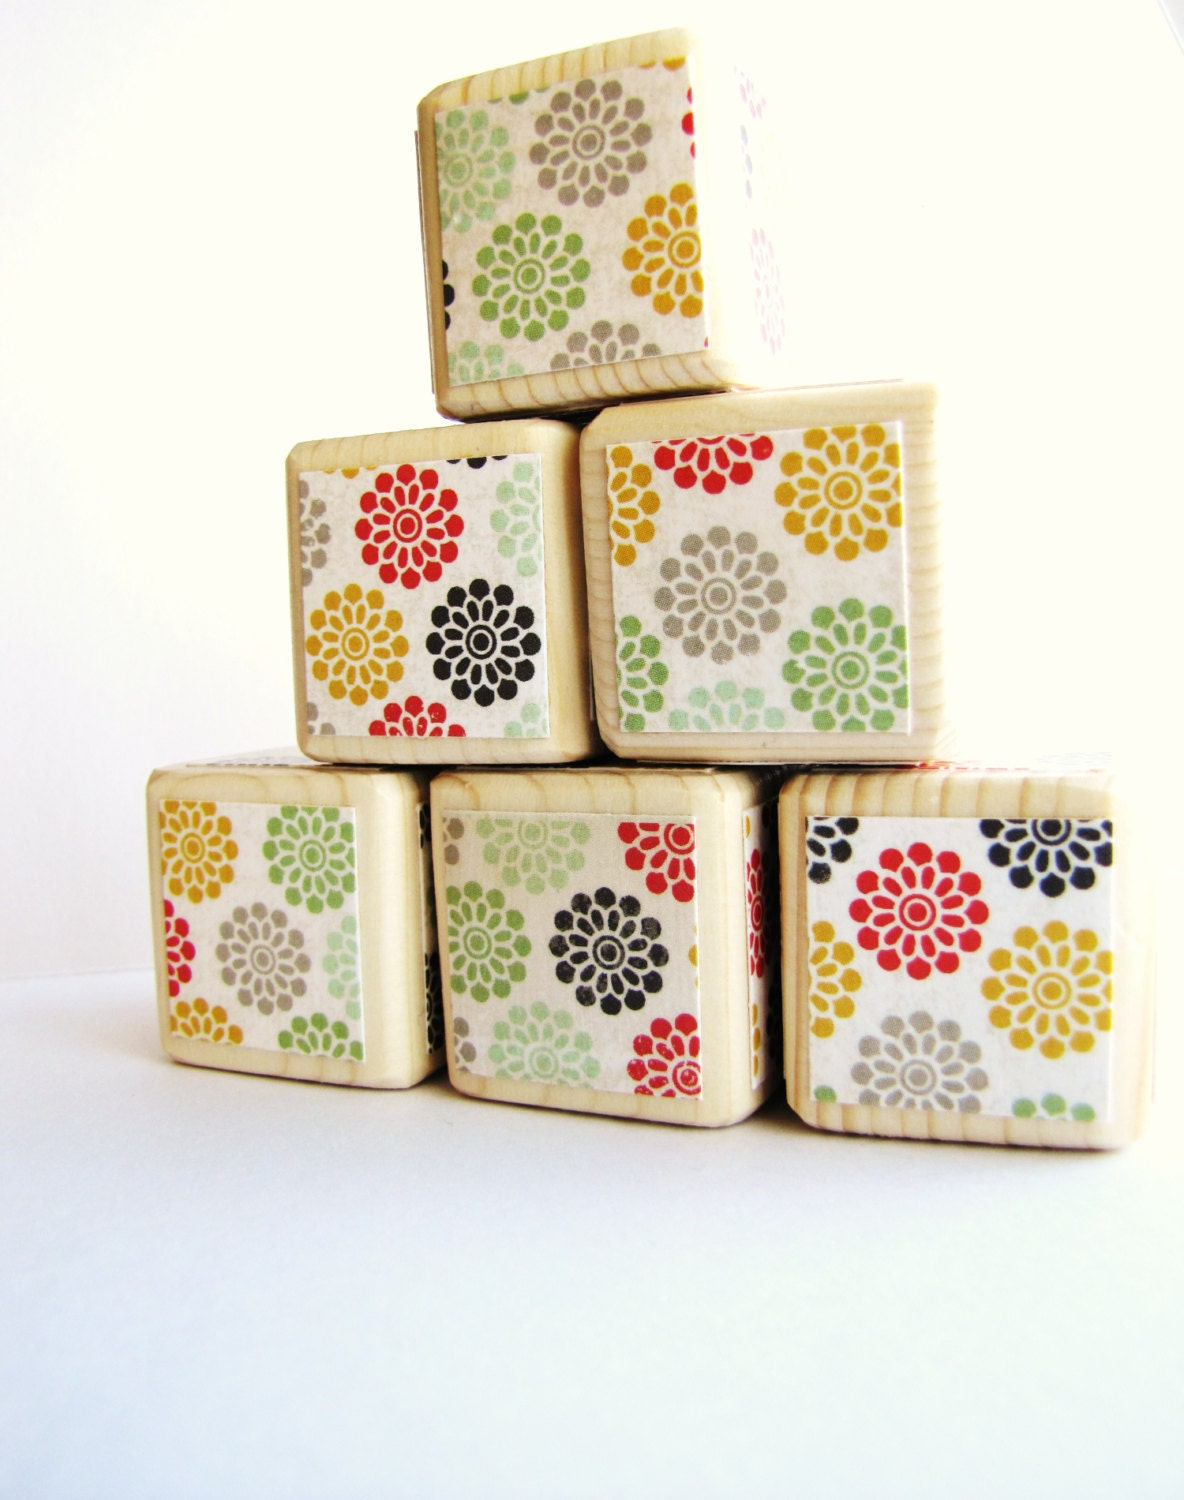 Baby Blocks. Wood Toy. Wooden blocks. Baby shower decoration.  Modern Baby toy. Autumn. Muted colors. - MiaBooo